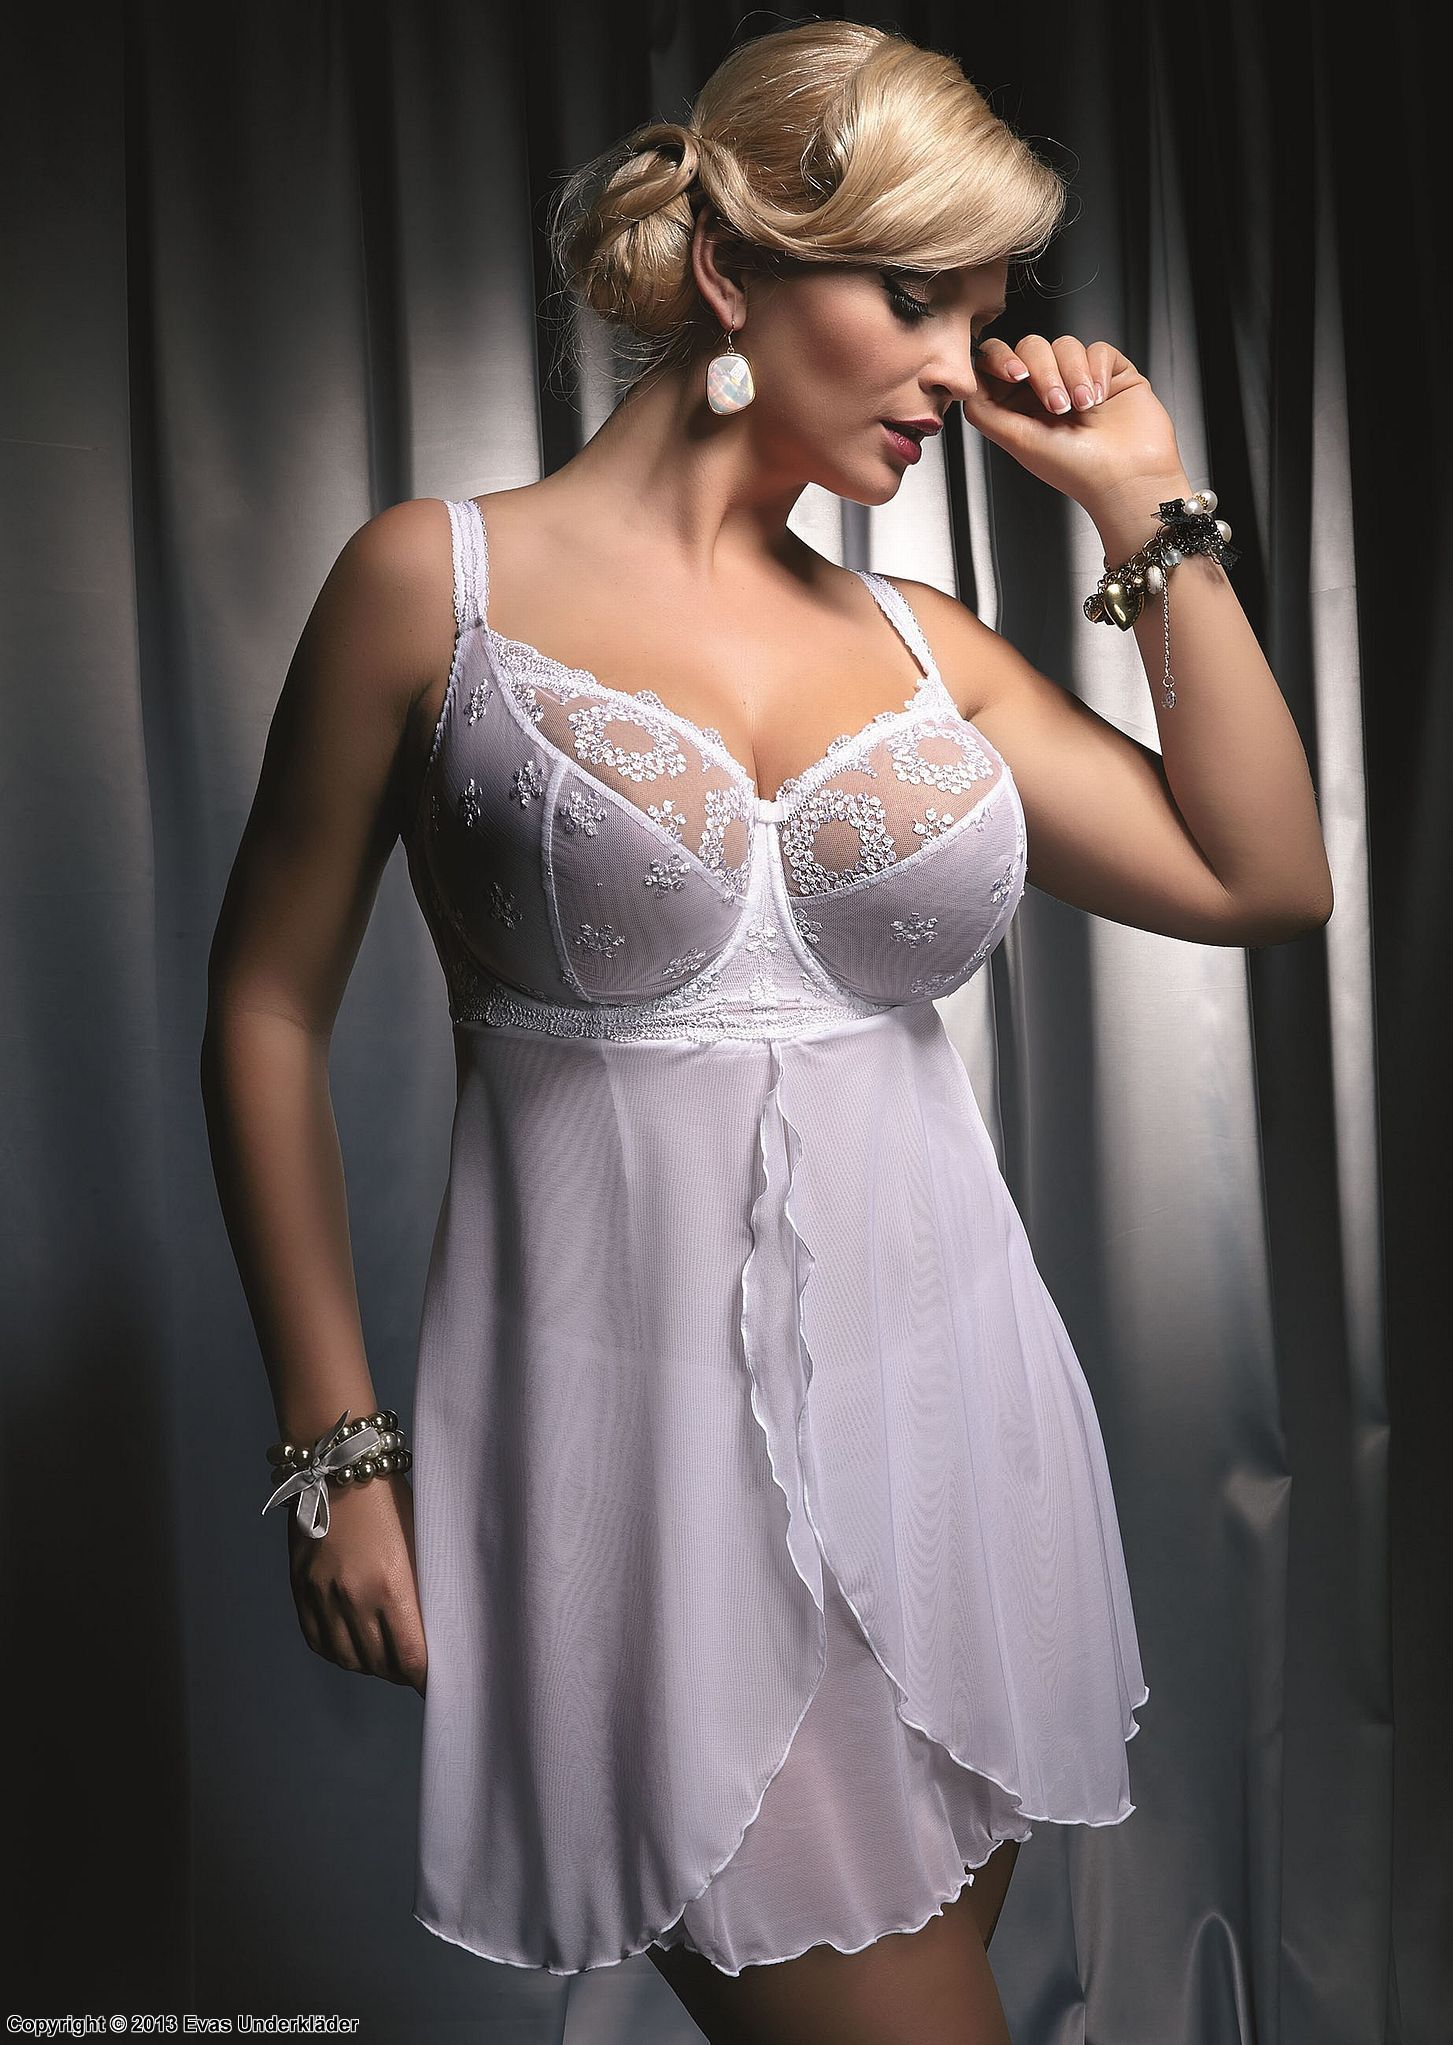 bea9755c9f5 Ines Cudna | Stuff for Scott | Wedding dress bra, Wedding ...